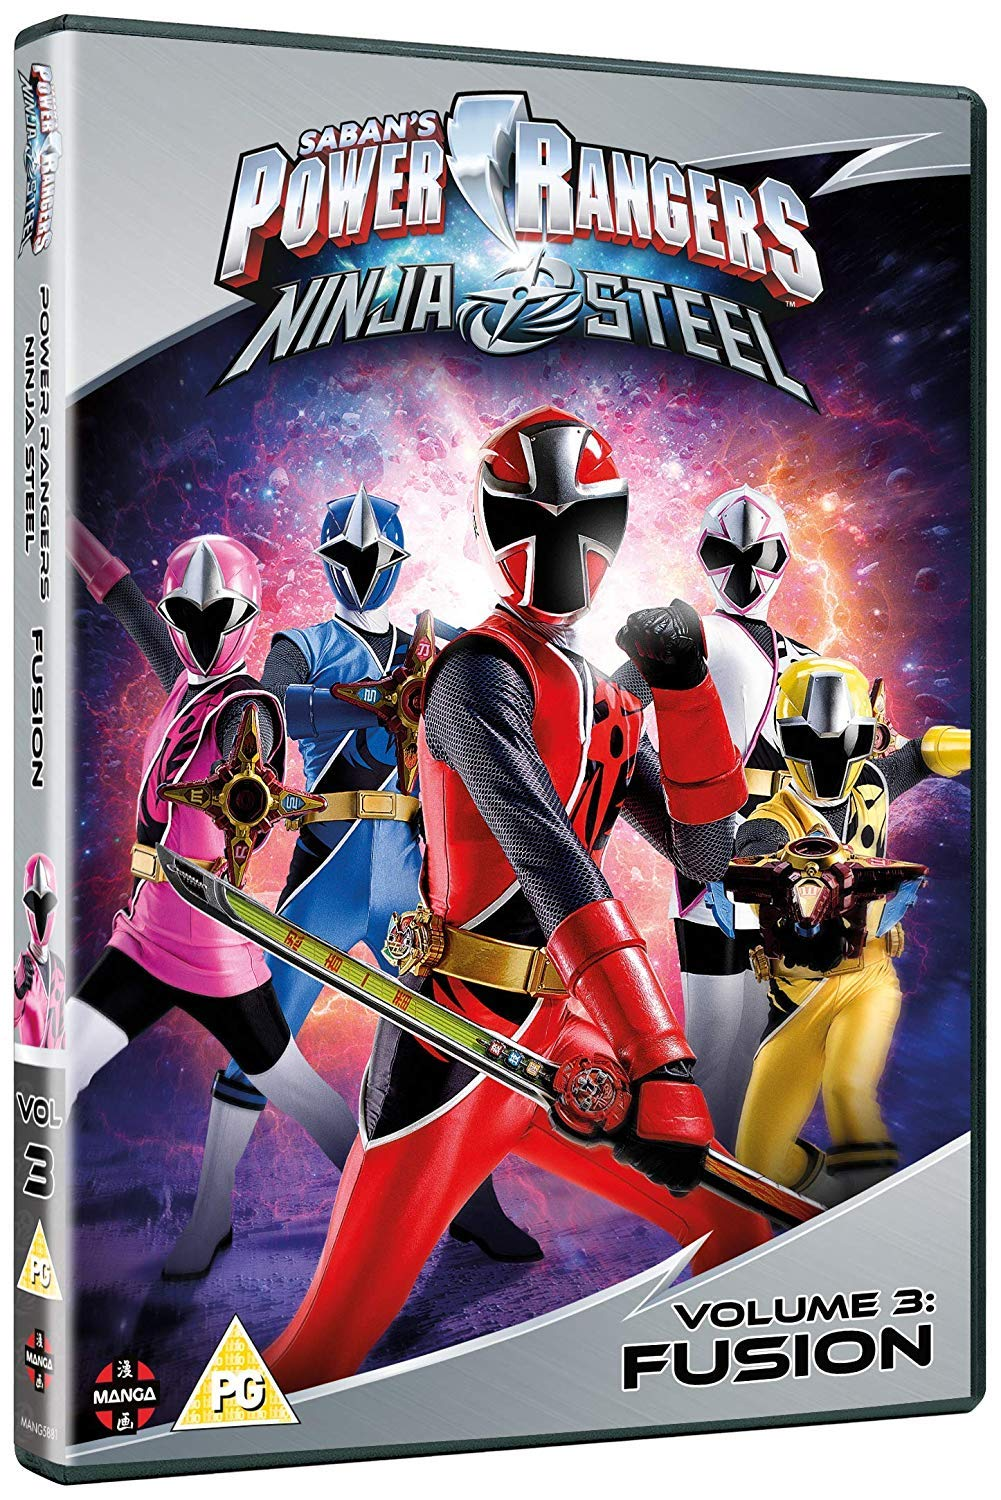 Power Rangers Ninja Steel: Fusion Volume 3 Episodes 9-12 DVD ...